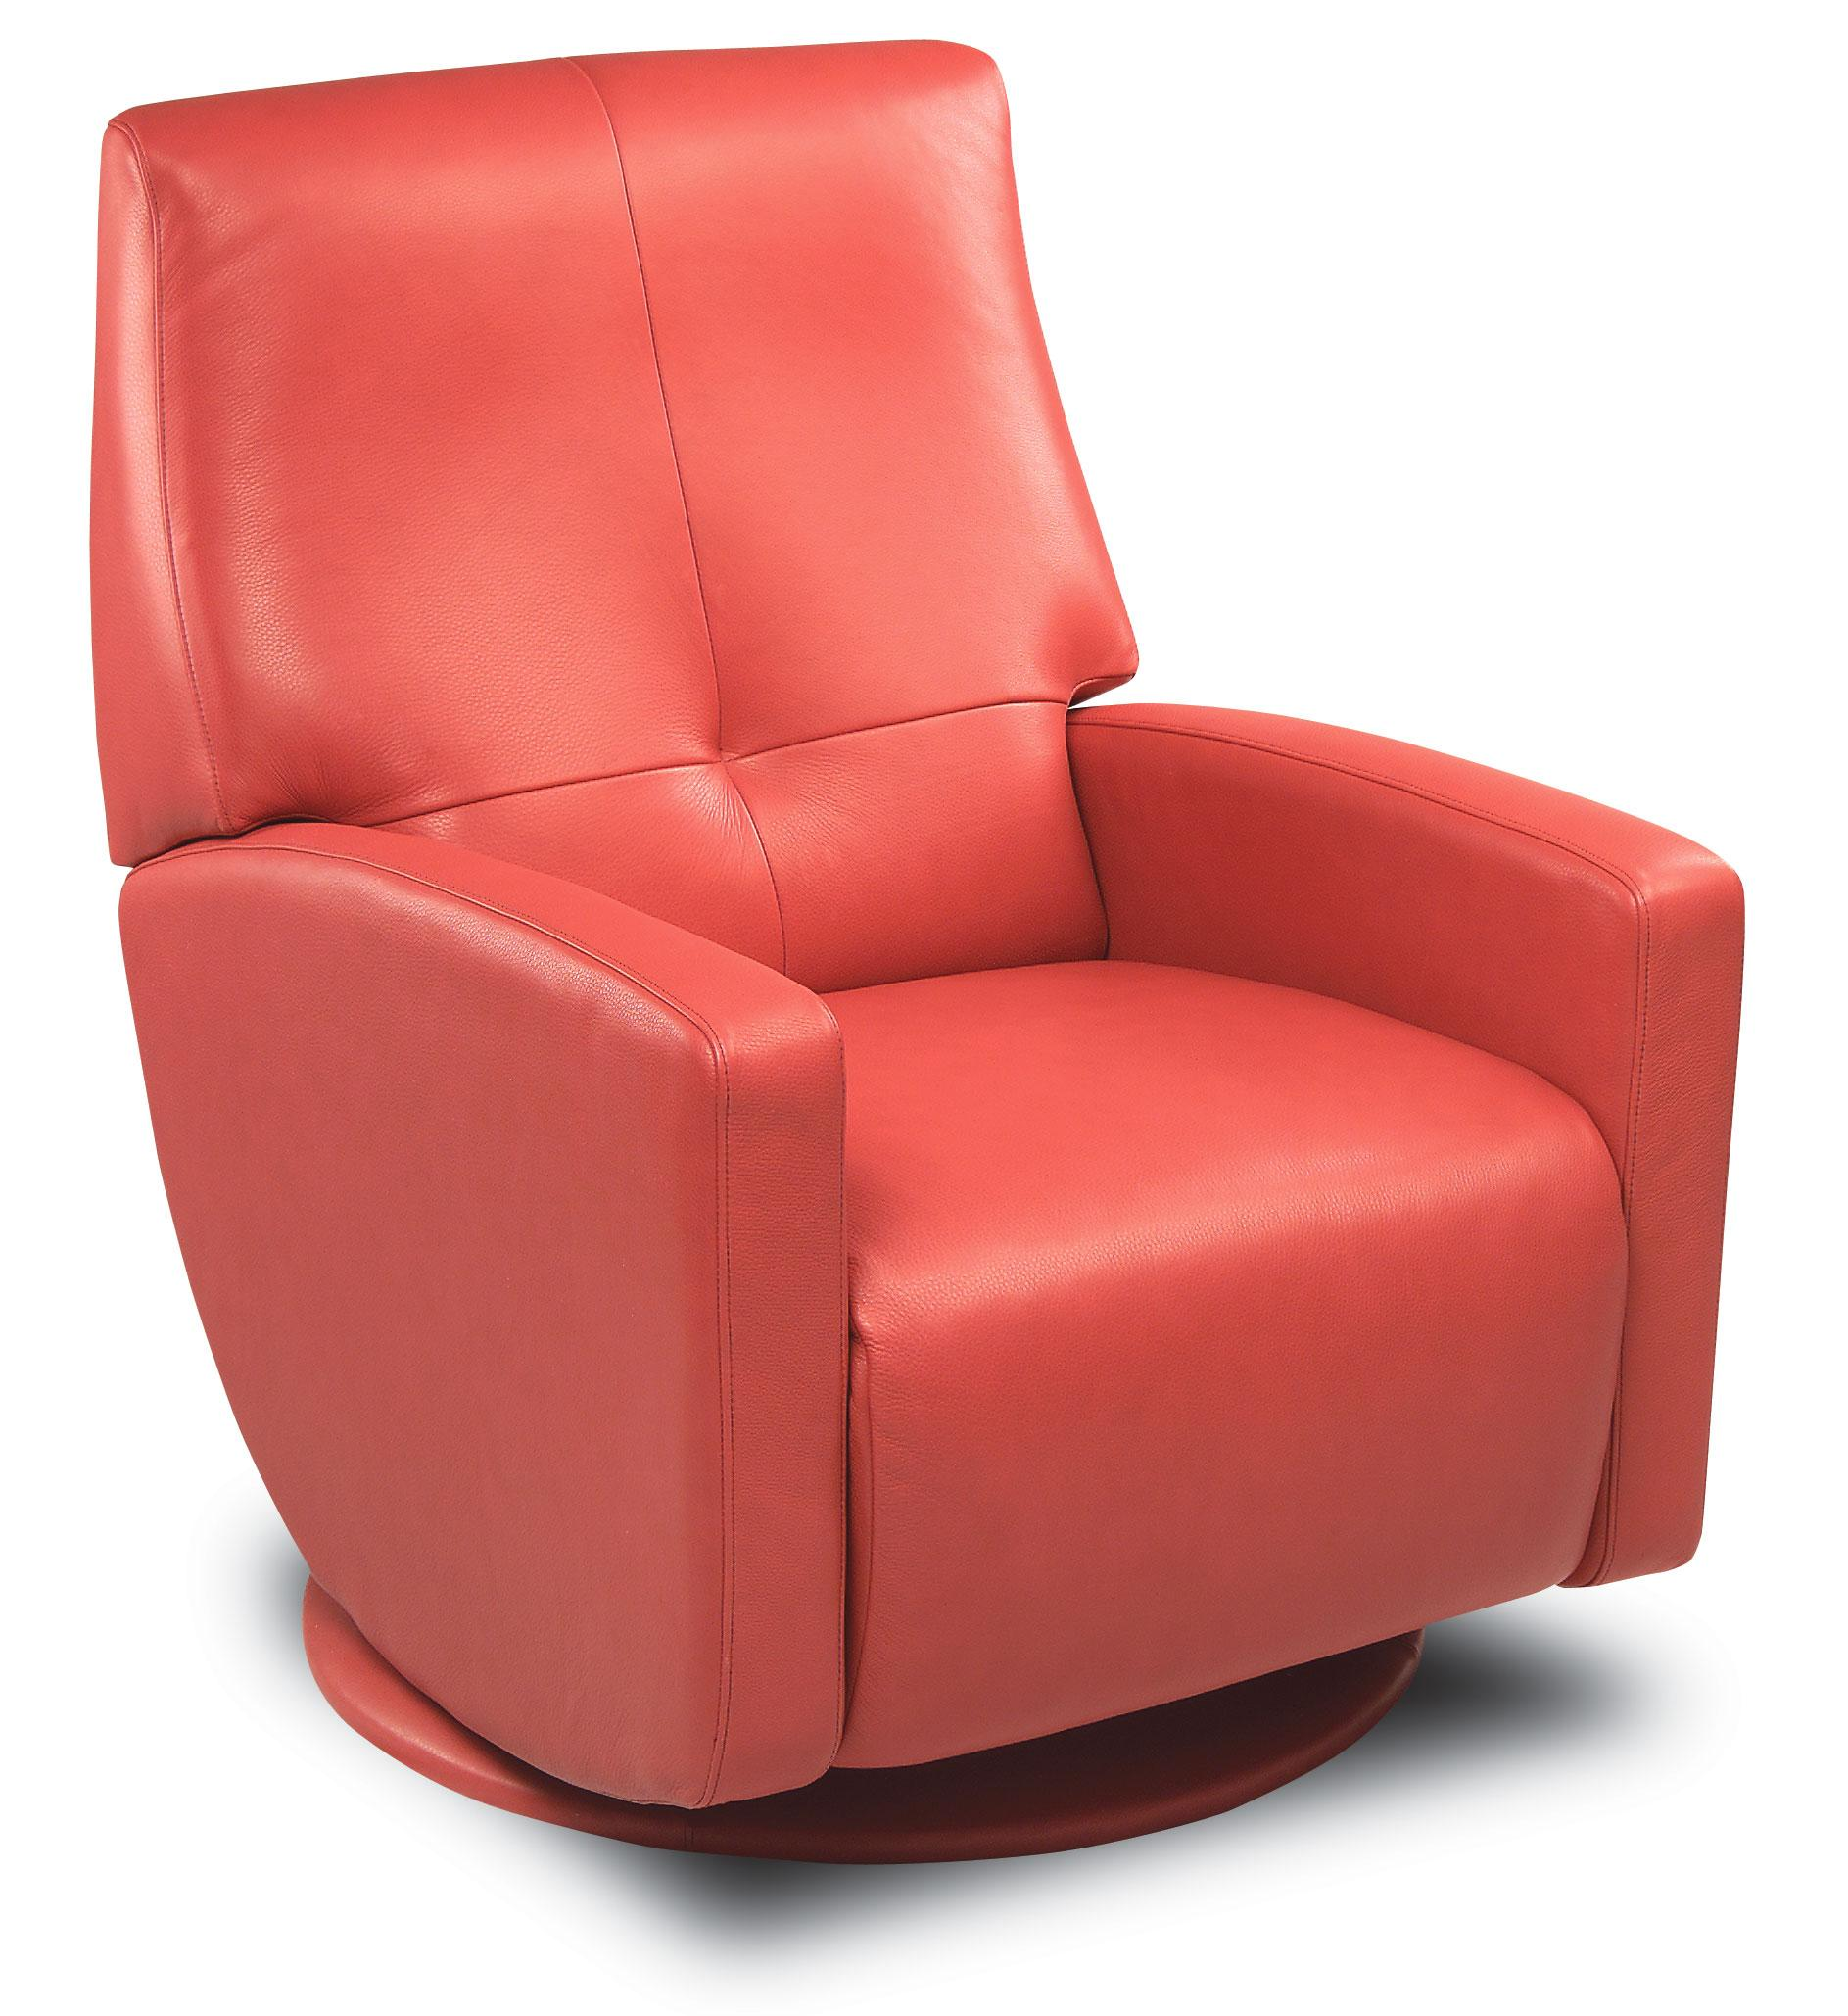 American leather cardinal contemporary styled upholstered recliner sprintz furniture three way recliner nashville franklin and greater tennessee